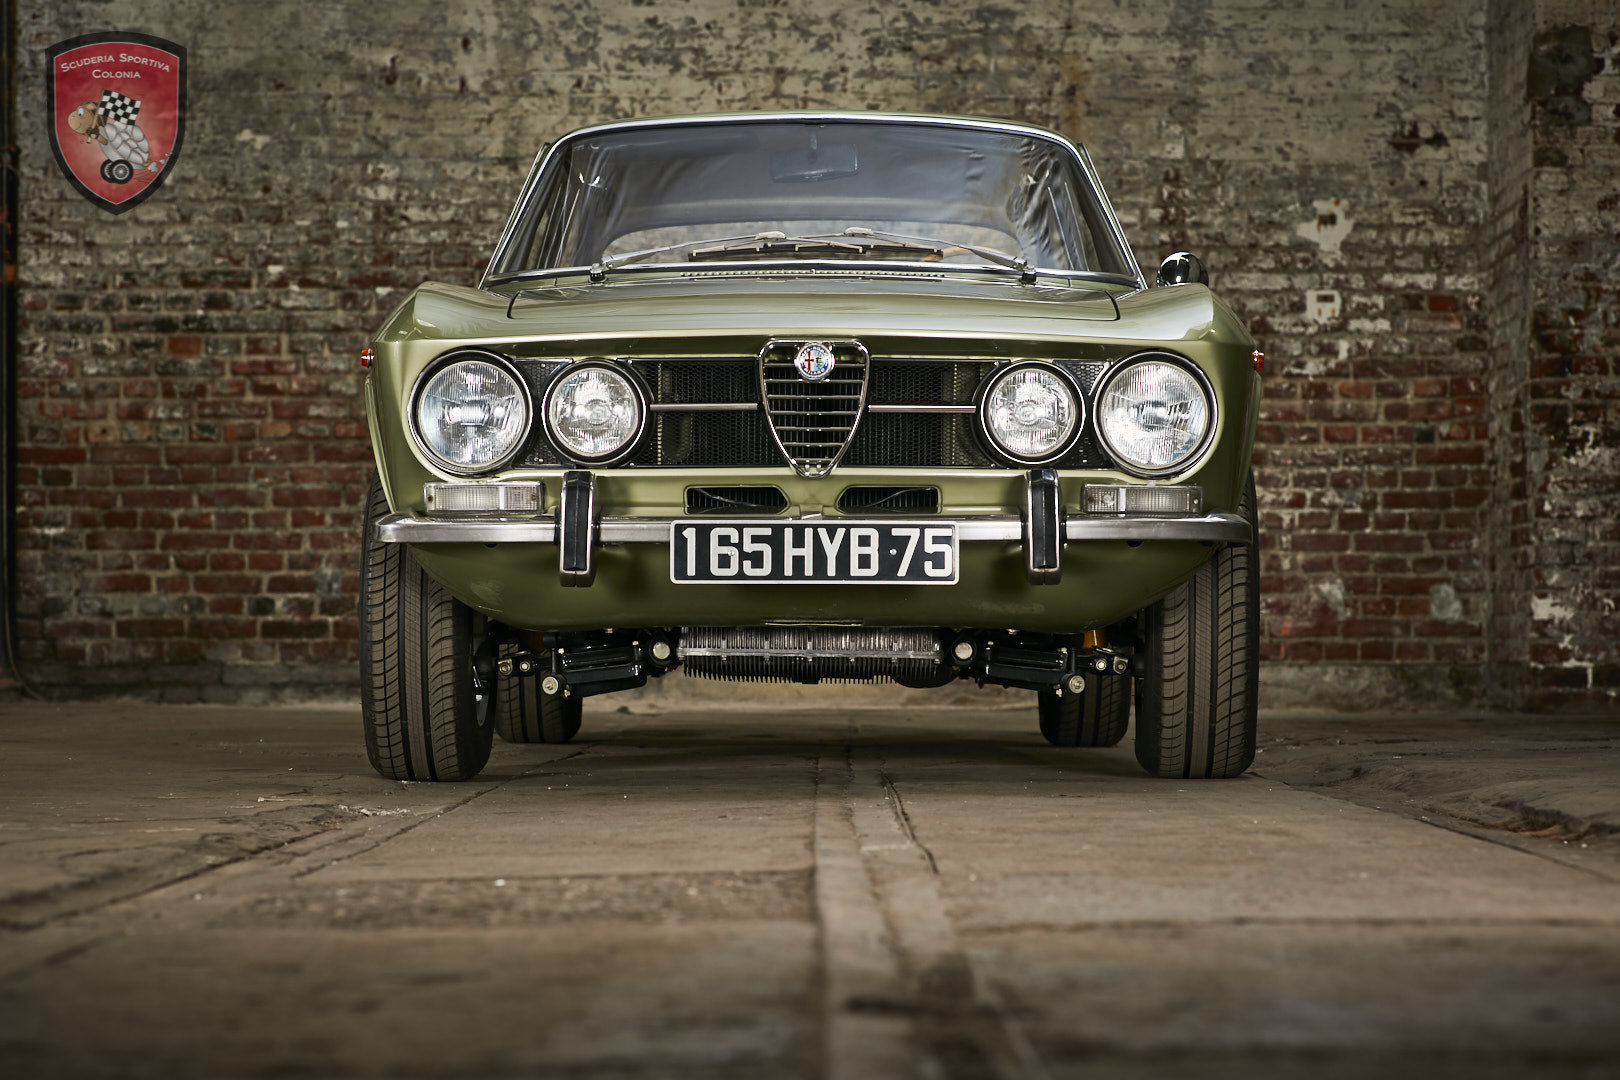 1971 Alfa Romeo 1750 GTV II restored  For Sale (picture 1 of 6)